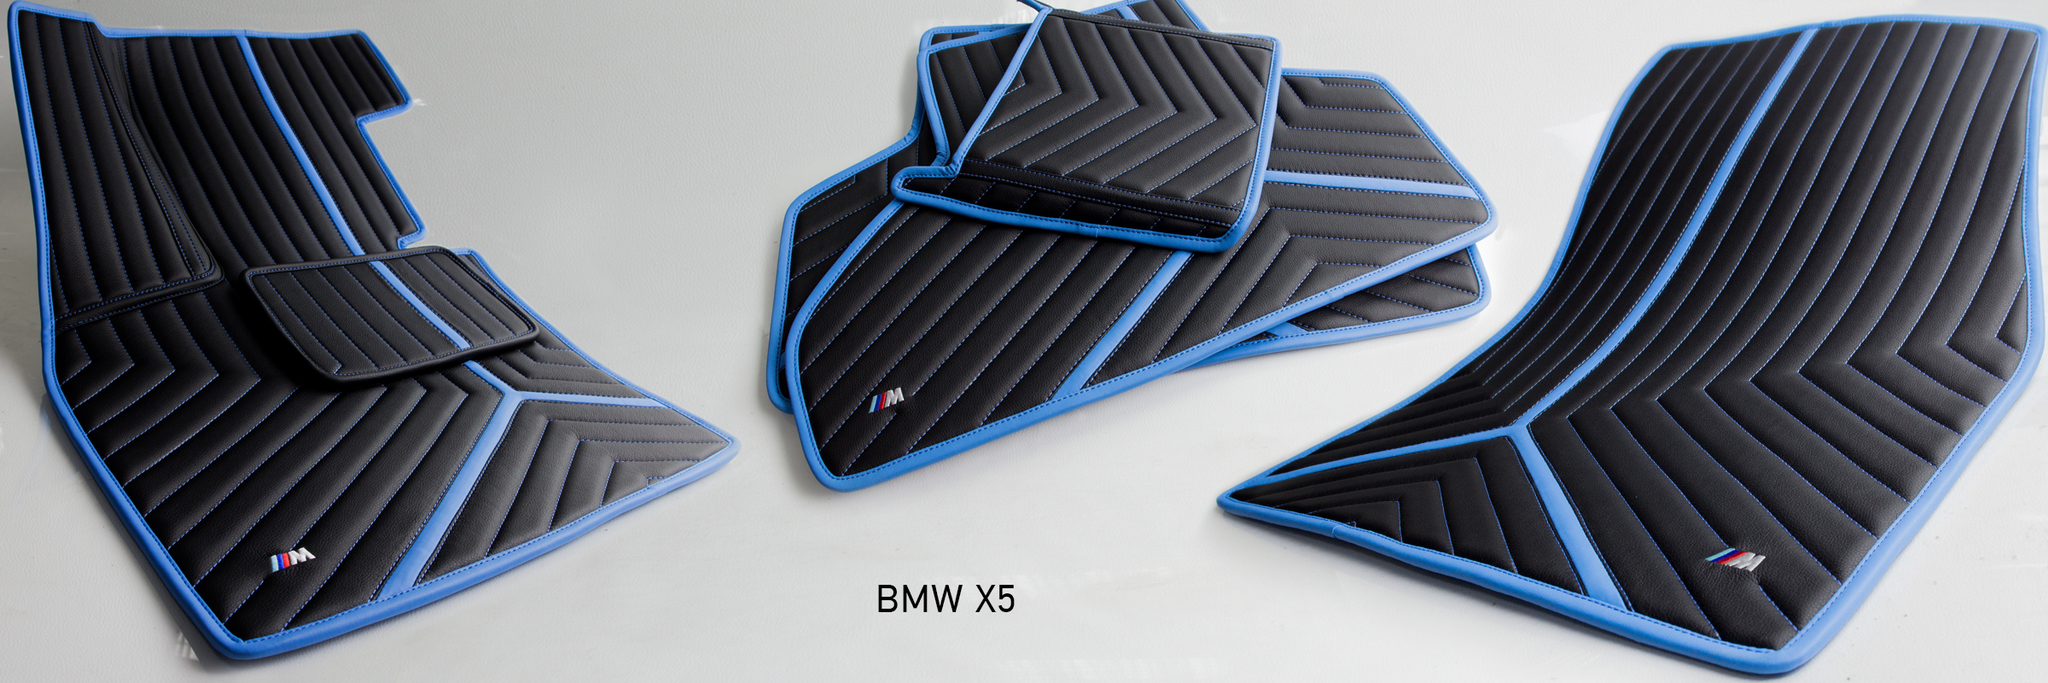 images-products-1-7894-232988374-BMW_X5SDS.jpg